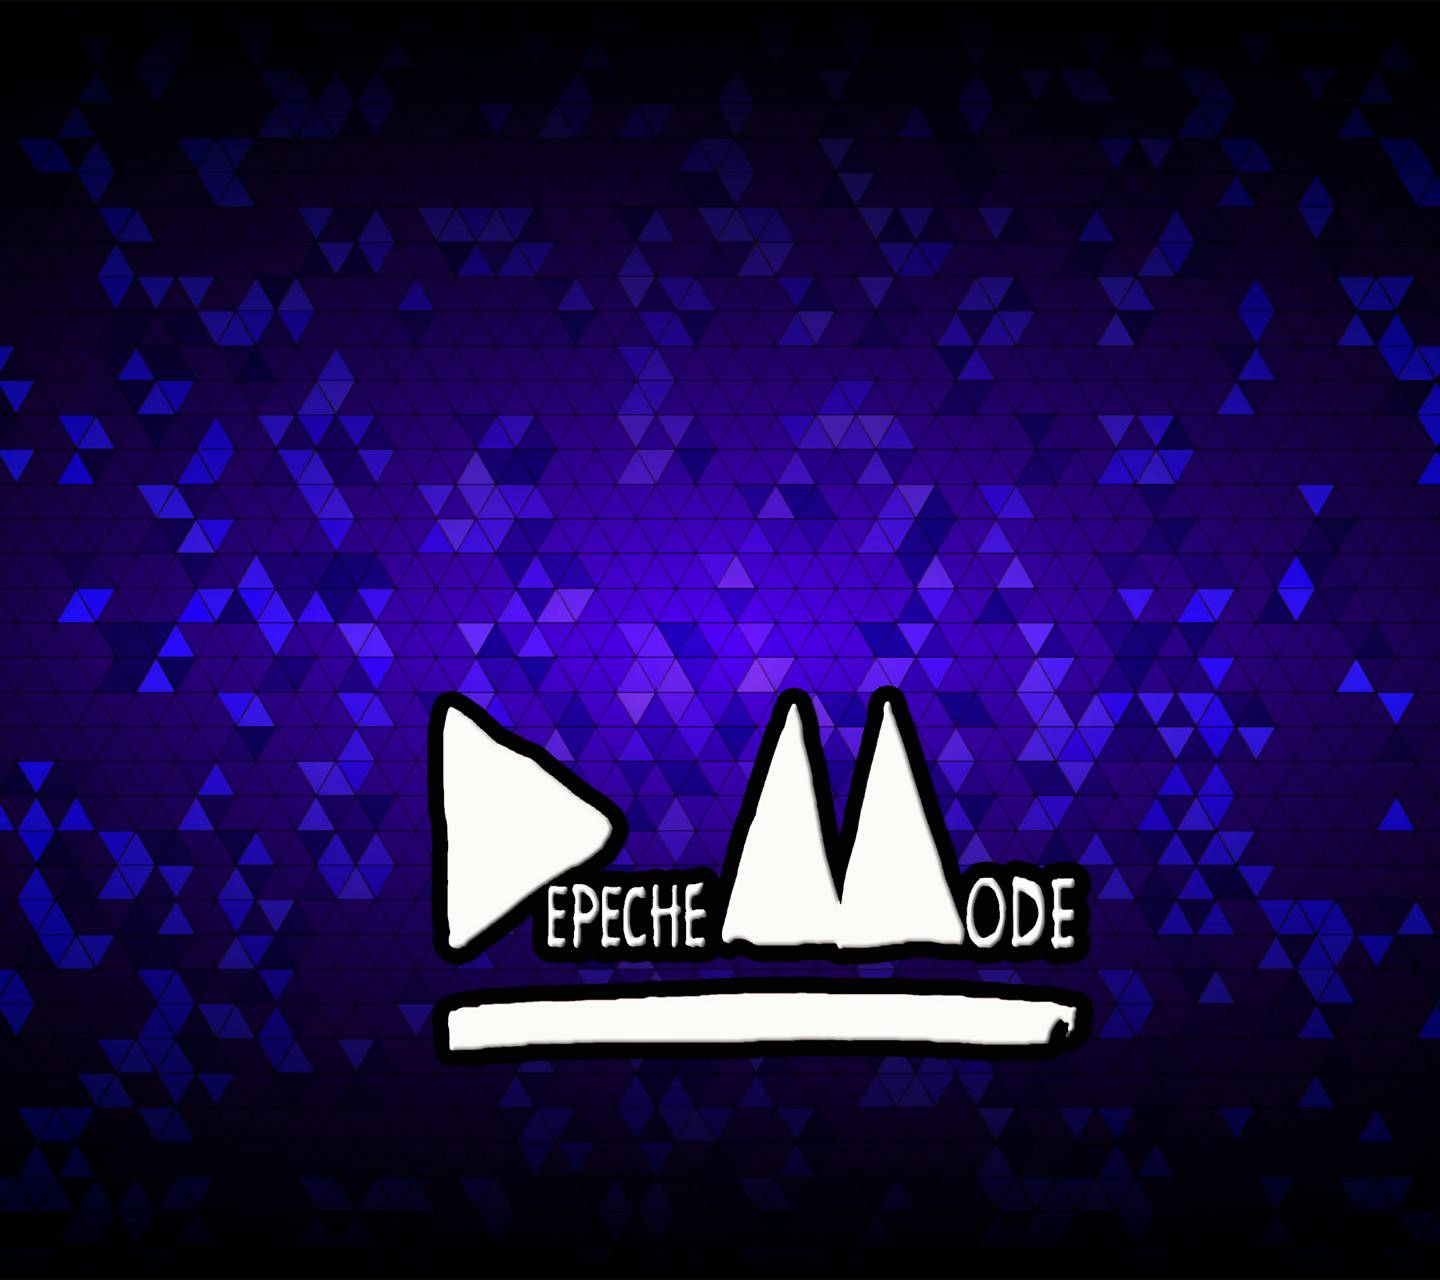 Depeche Mode logo